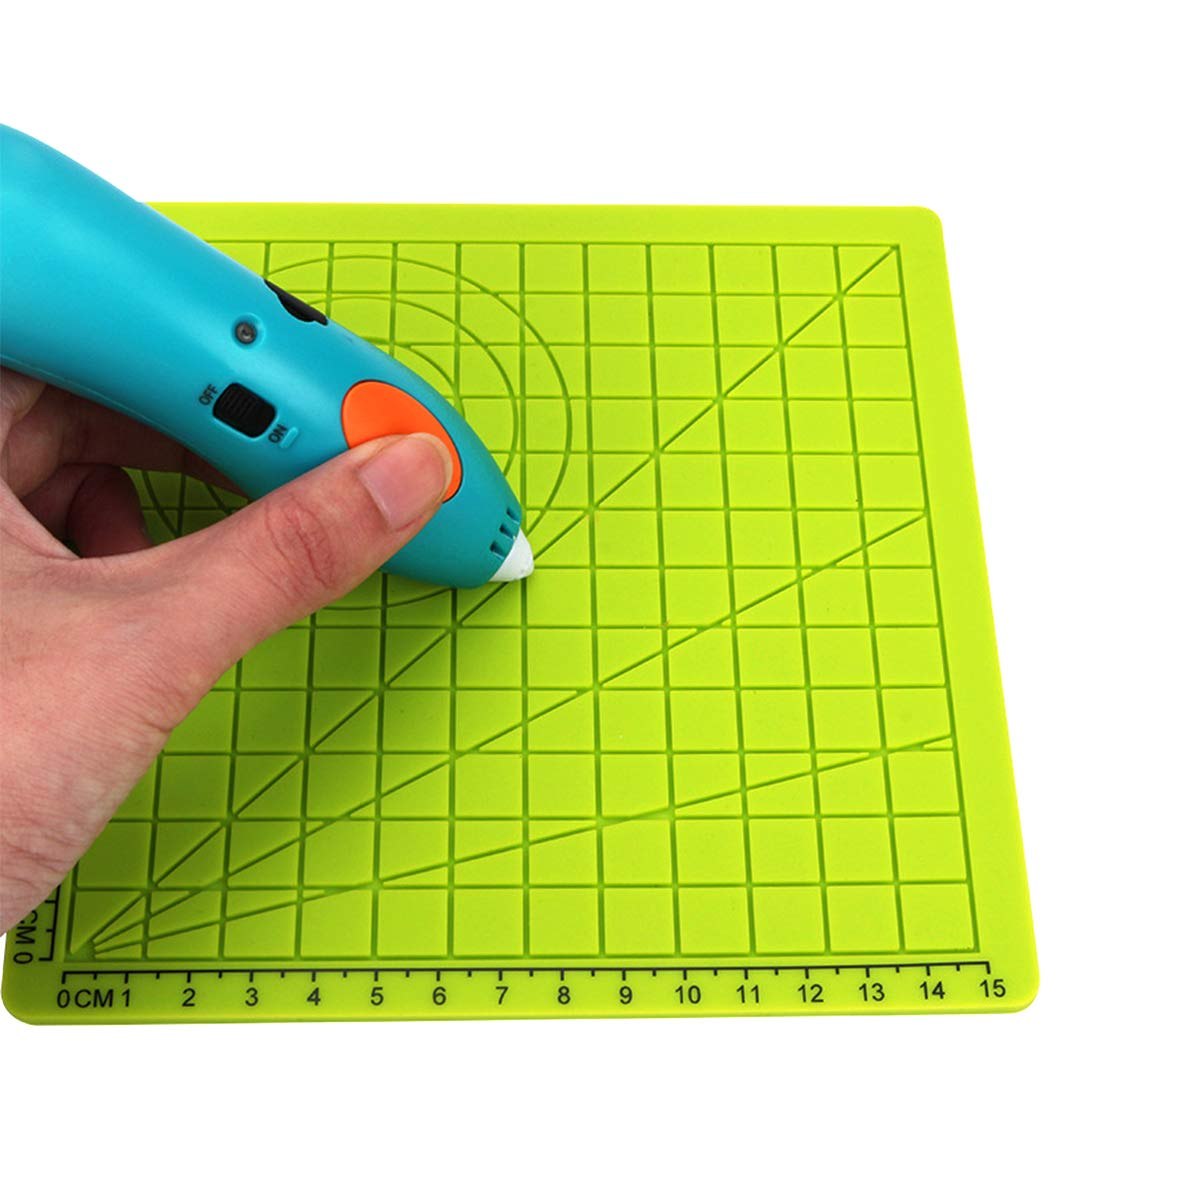 Toaiot 3D Pen Mat Doodle Pad 6.7x6.7 inch with 2 Silicone Finger Caps Basic Geometric Template Multi-Purpose Design for Drawing Tools 3D Pen Accessory Drawing Mat for Kid Adults Artist-Green Type B